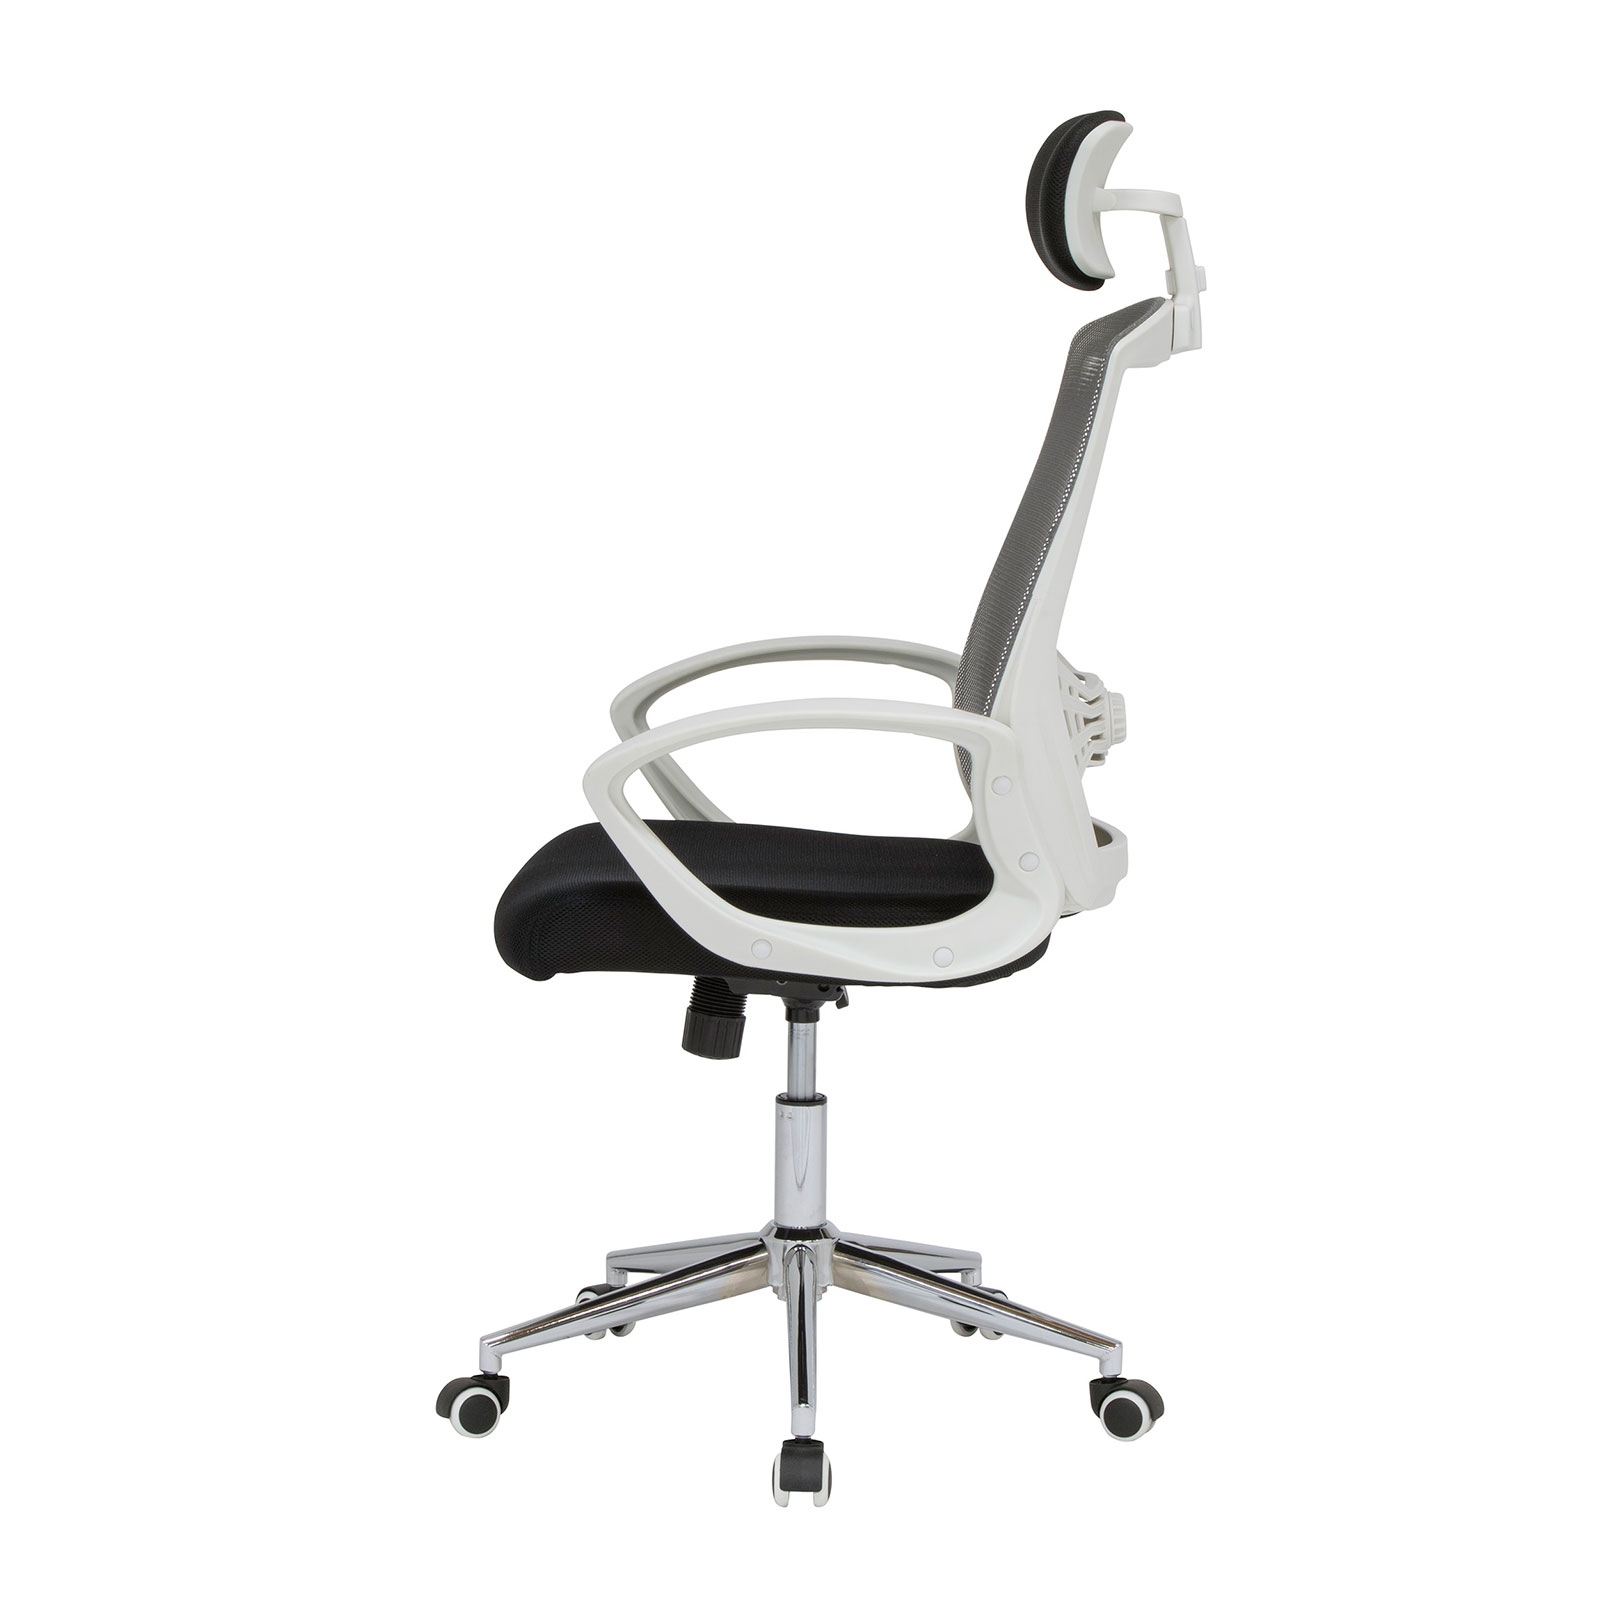 10663-High-Back-Mesh-Managers-Chair-L-side